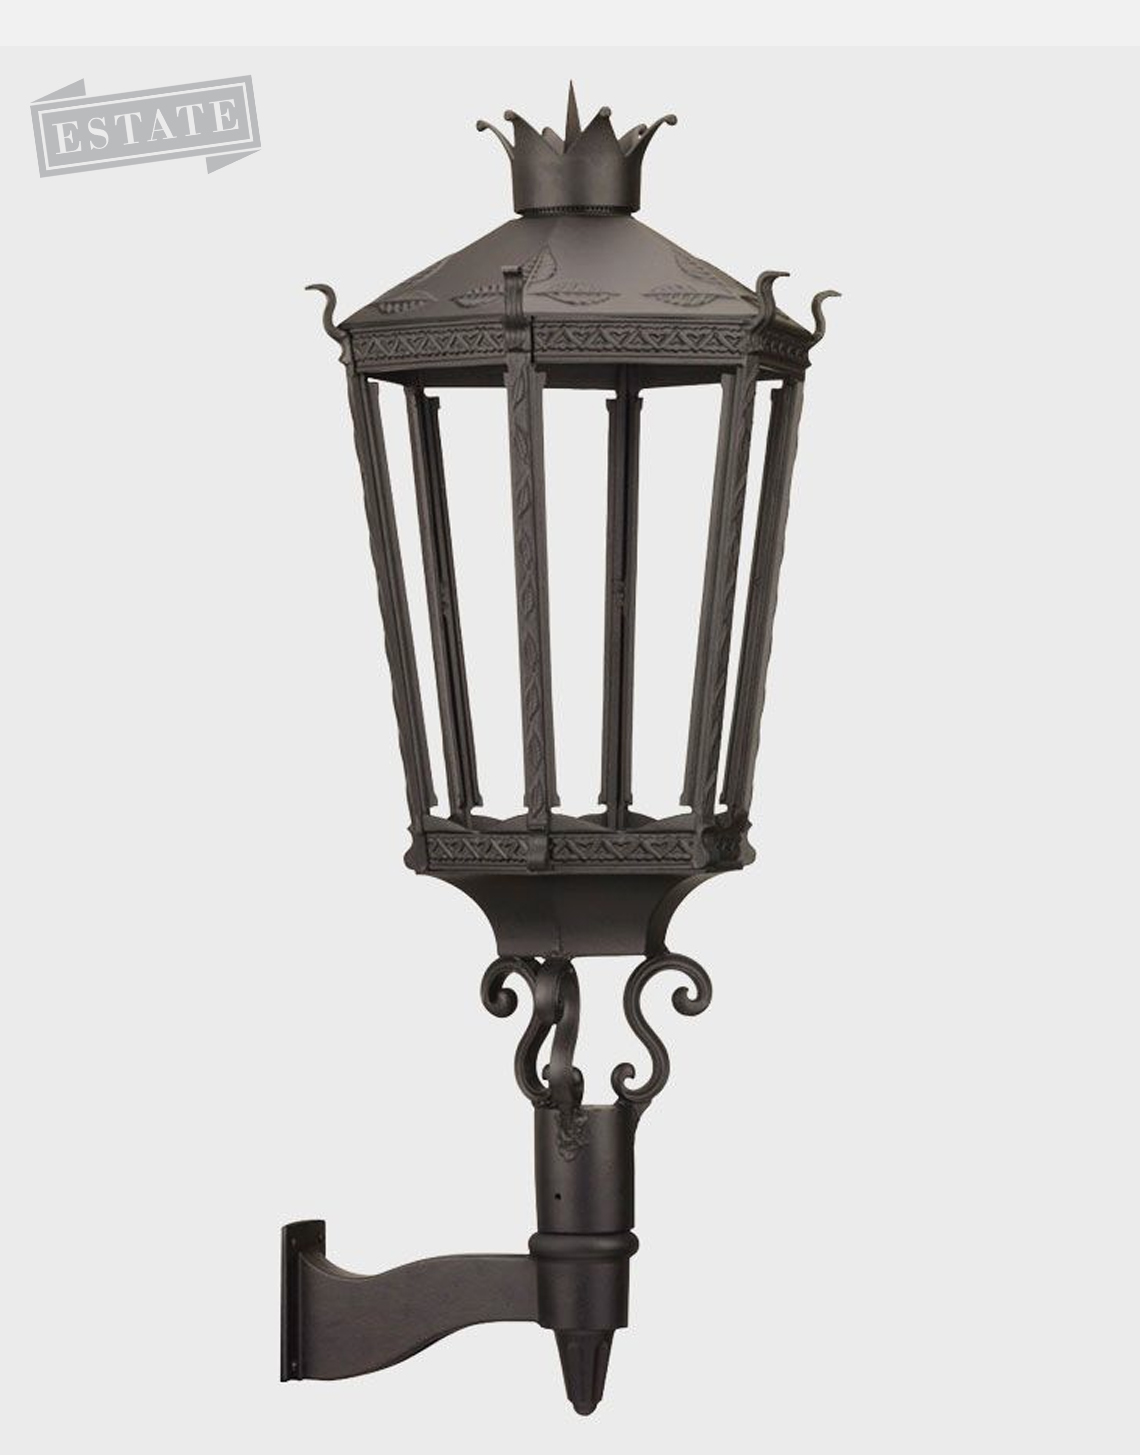 Wall Gas Lamps : Kronberg 9000 Gaslite Outdoor Gas and Electric Yard Lamp lighting Fixture - Easy Living Home Systems